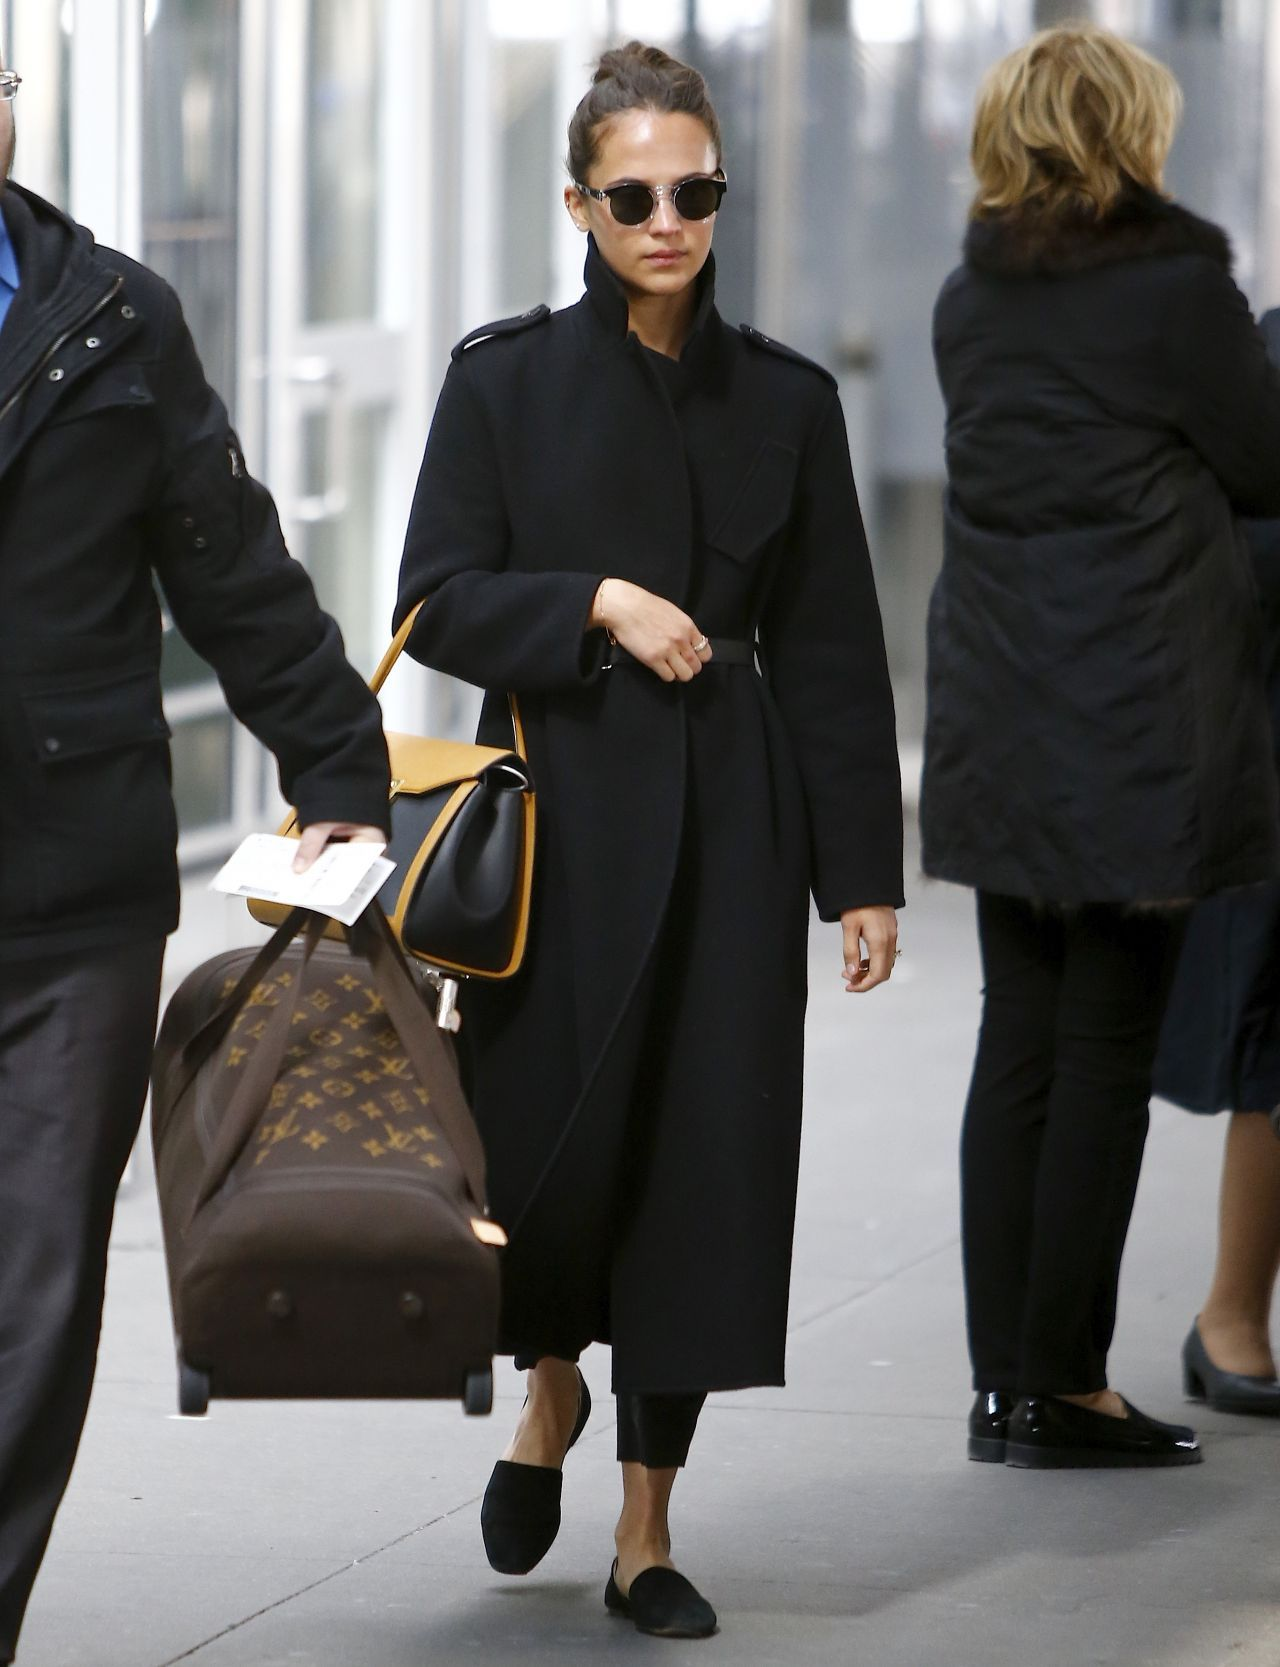 Alicia Vikander Travel Style 03/06/2019 #AliciaVikander #Celebrity #Photos #Pics #Private #Style #celebrityphotos